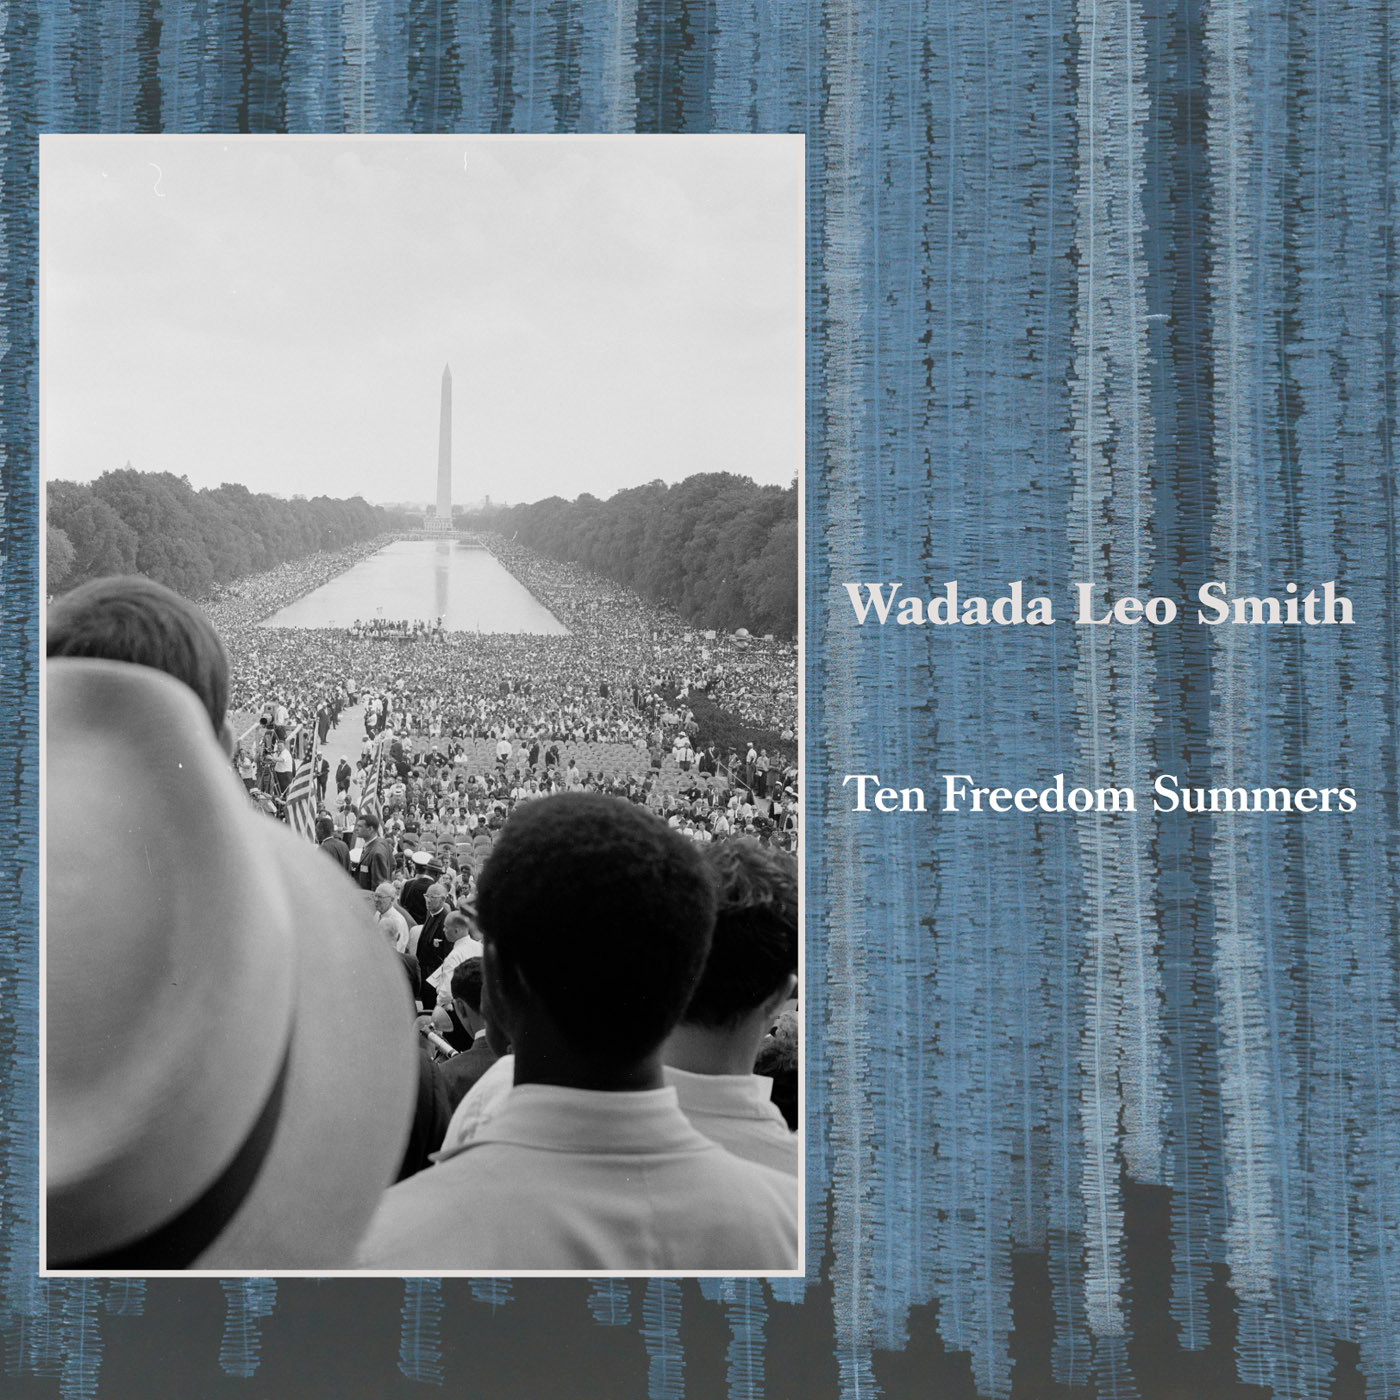 Wadada Leo Smith - Ten Freedom Summers (2012)